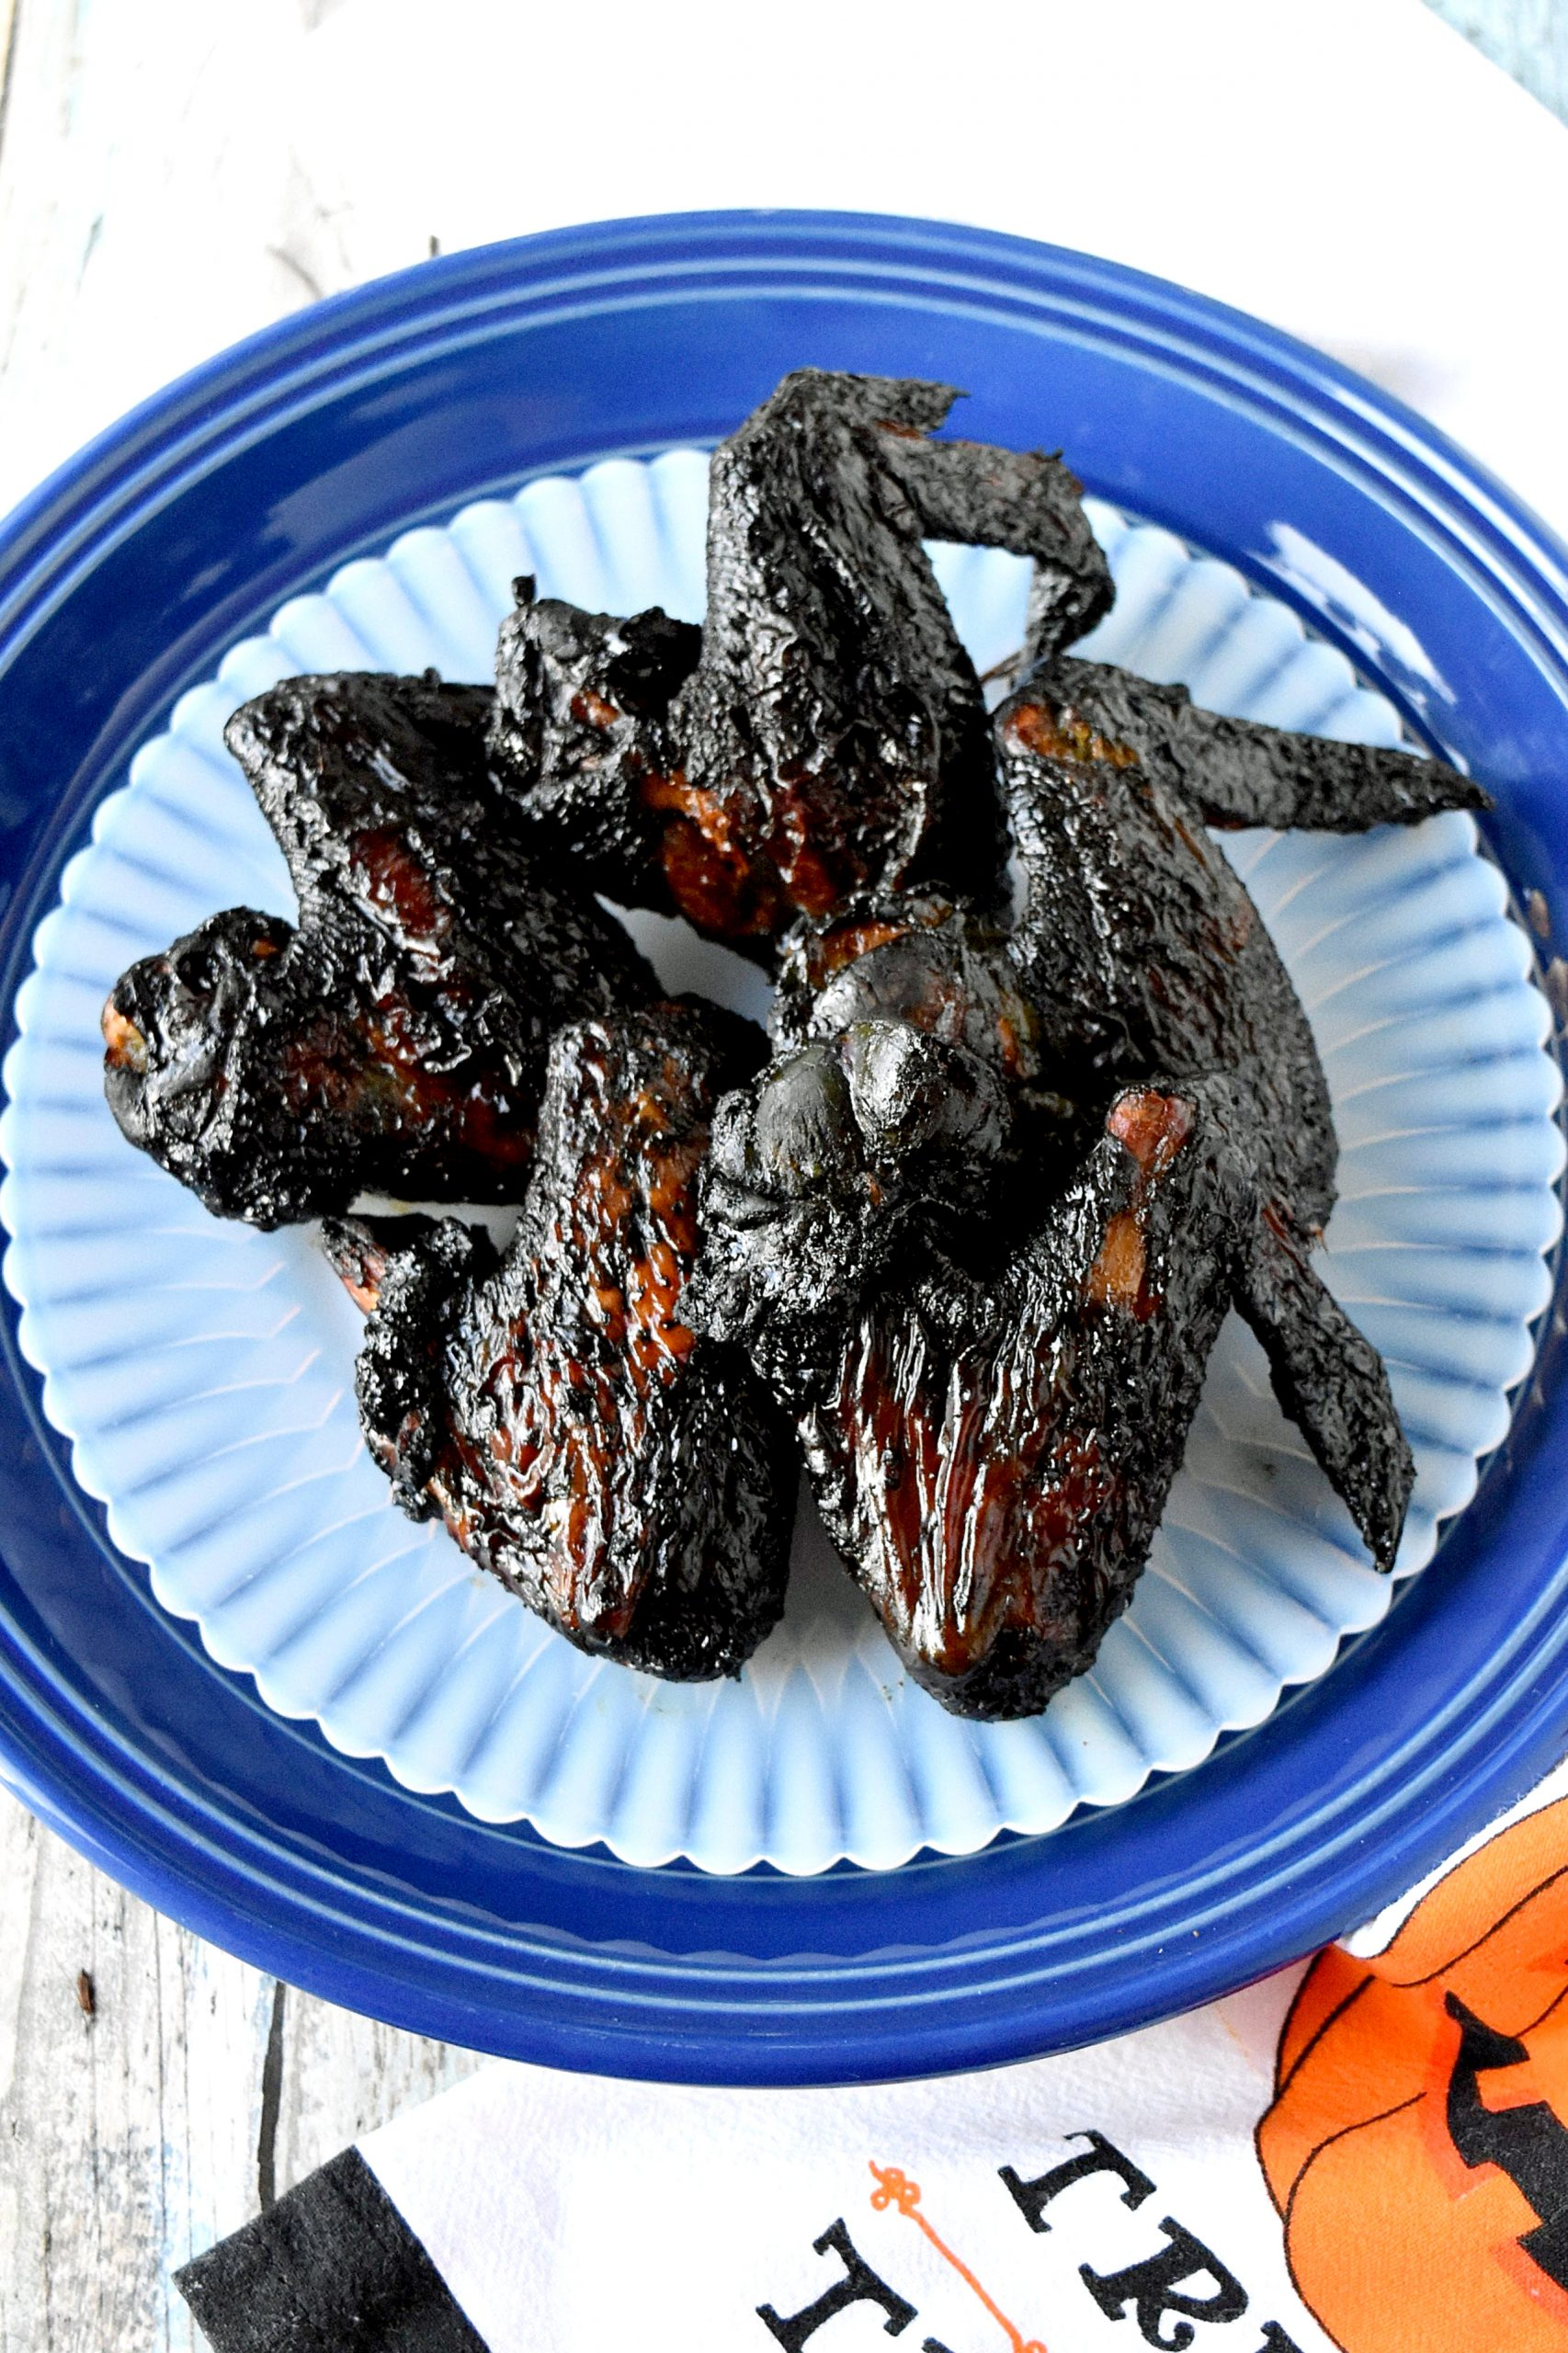 Air Fried Bat Wings look creepy but taste delicious!  Marinated in an Asian inspired sauce, they're crispy and perfectly delicious for your Halloween party. #HalloweenTreatsWeek